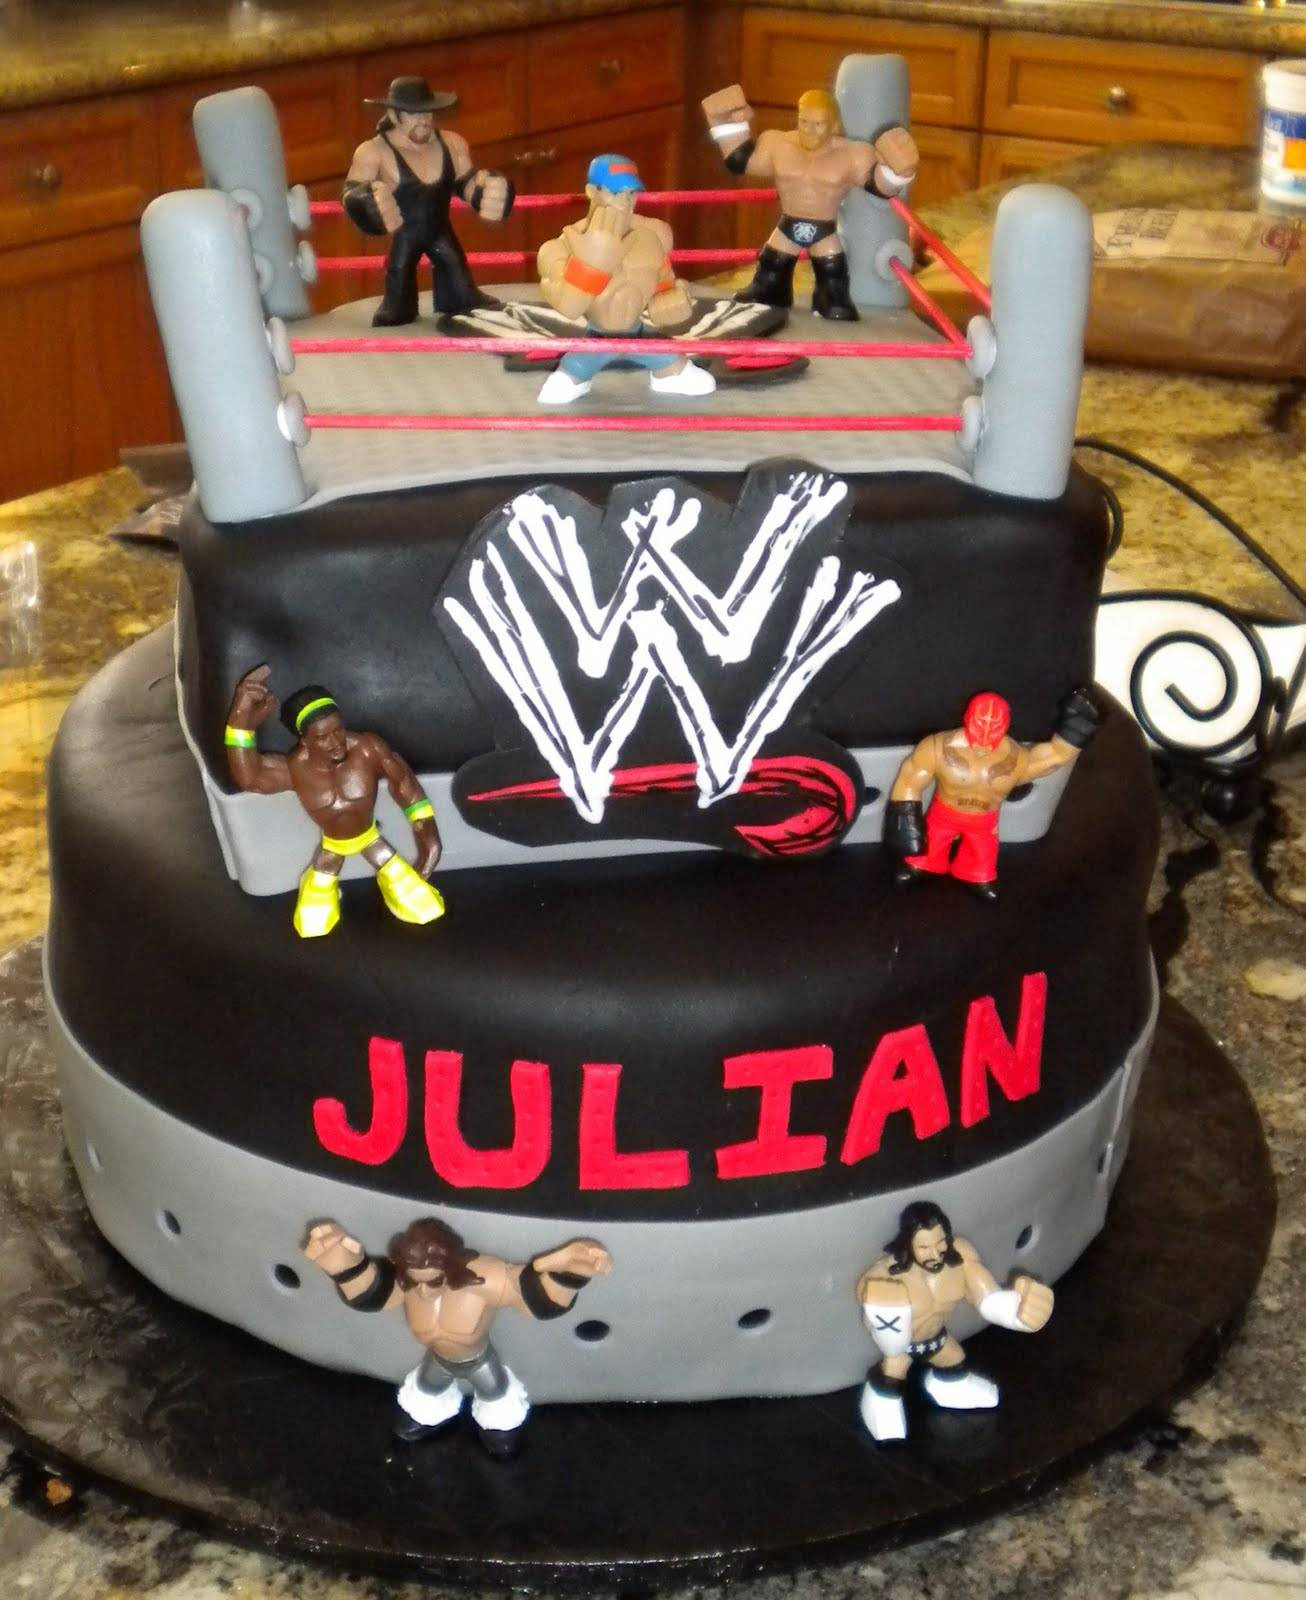 Wondrous Wwe Cakes Decoration Ideas Little Birthday Cakes Funny Birthday Cards Online Alyptdamsfinfo